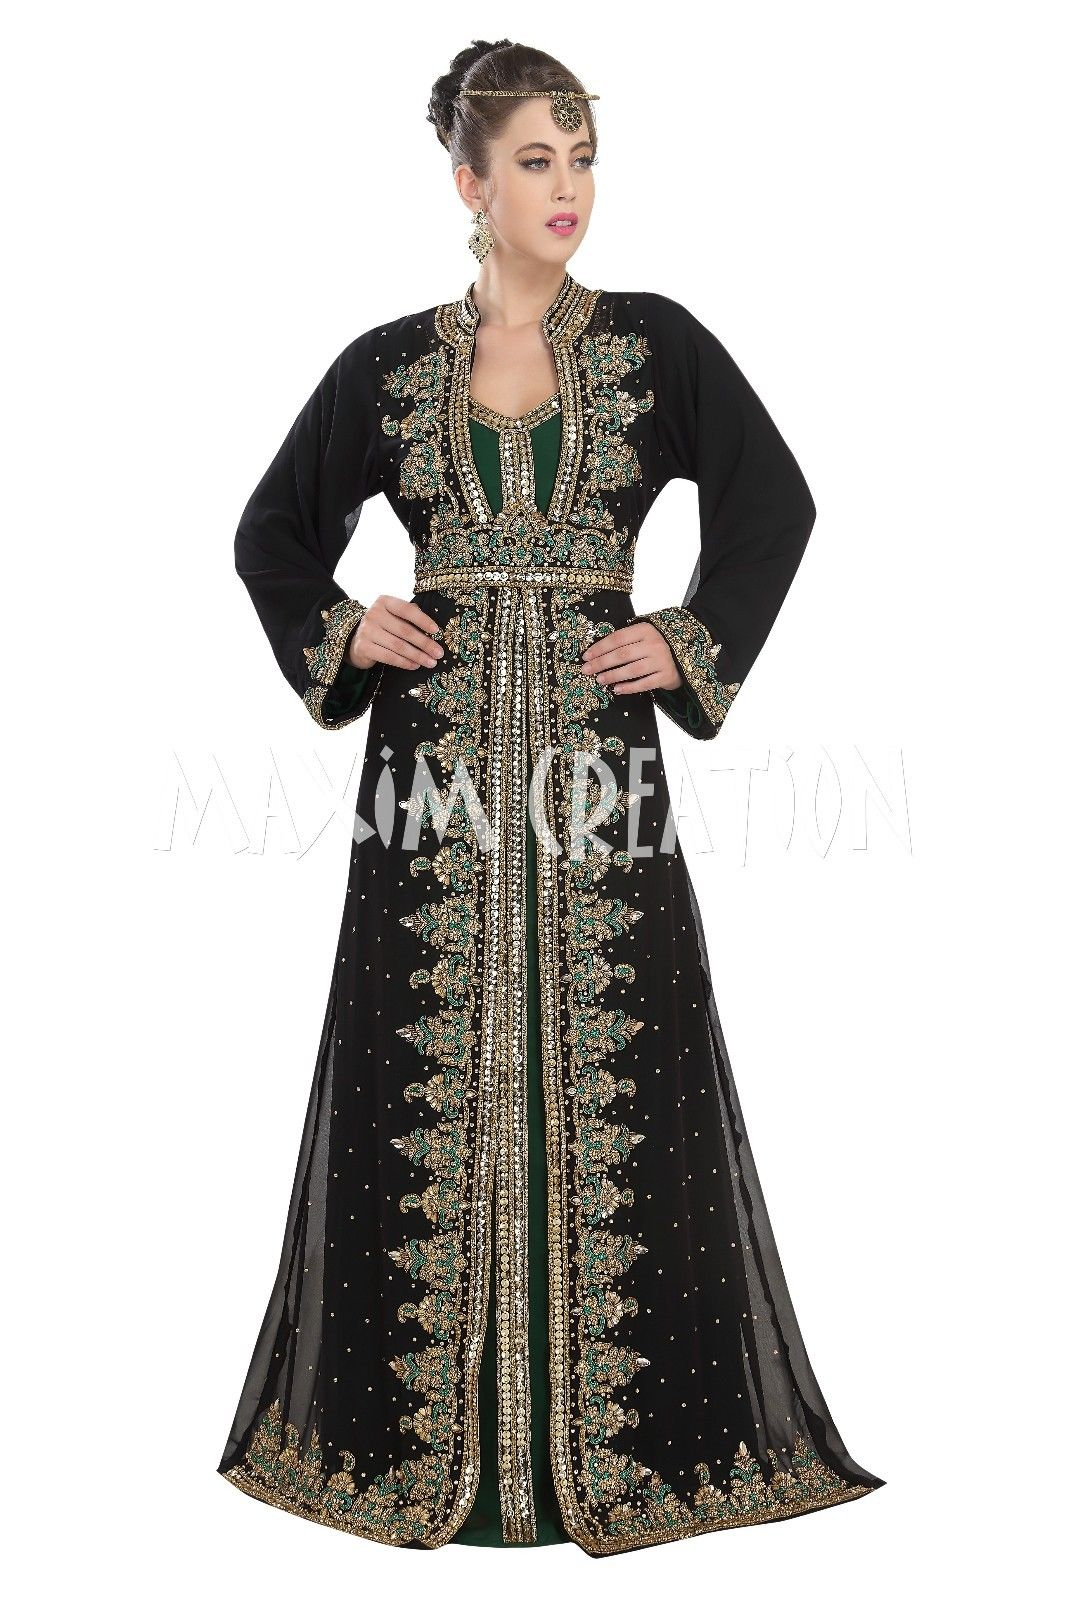 ROYAL MOROCCAN KAFTAN WEDDING GOWN WITH BLING EMBROIDERY FOR WOMEN ONLY